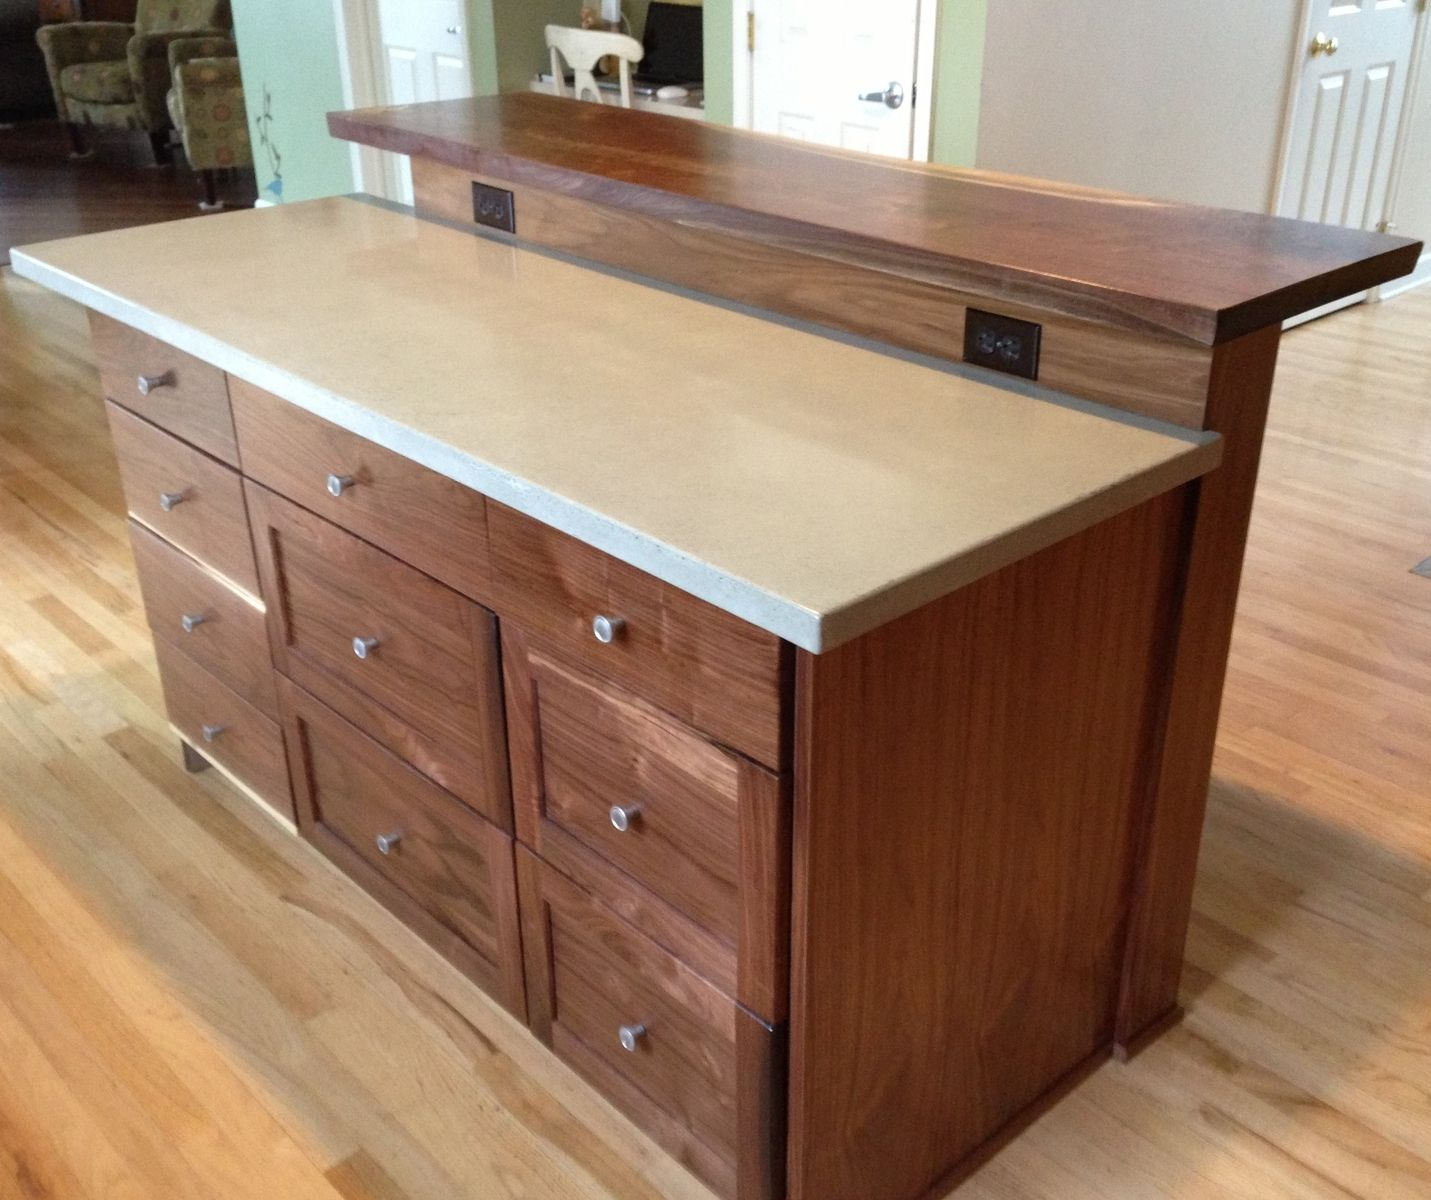 Kitchen Island With Bar Custom Kitchen Island With Slab Bar Top By Saw Tooth Designs Llc